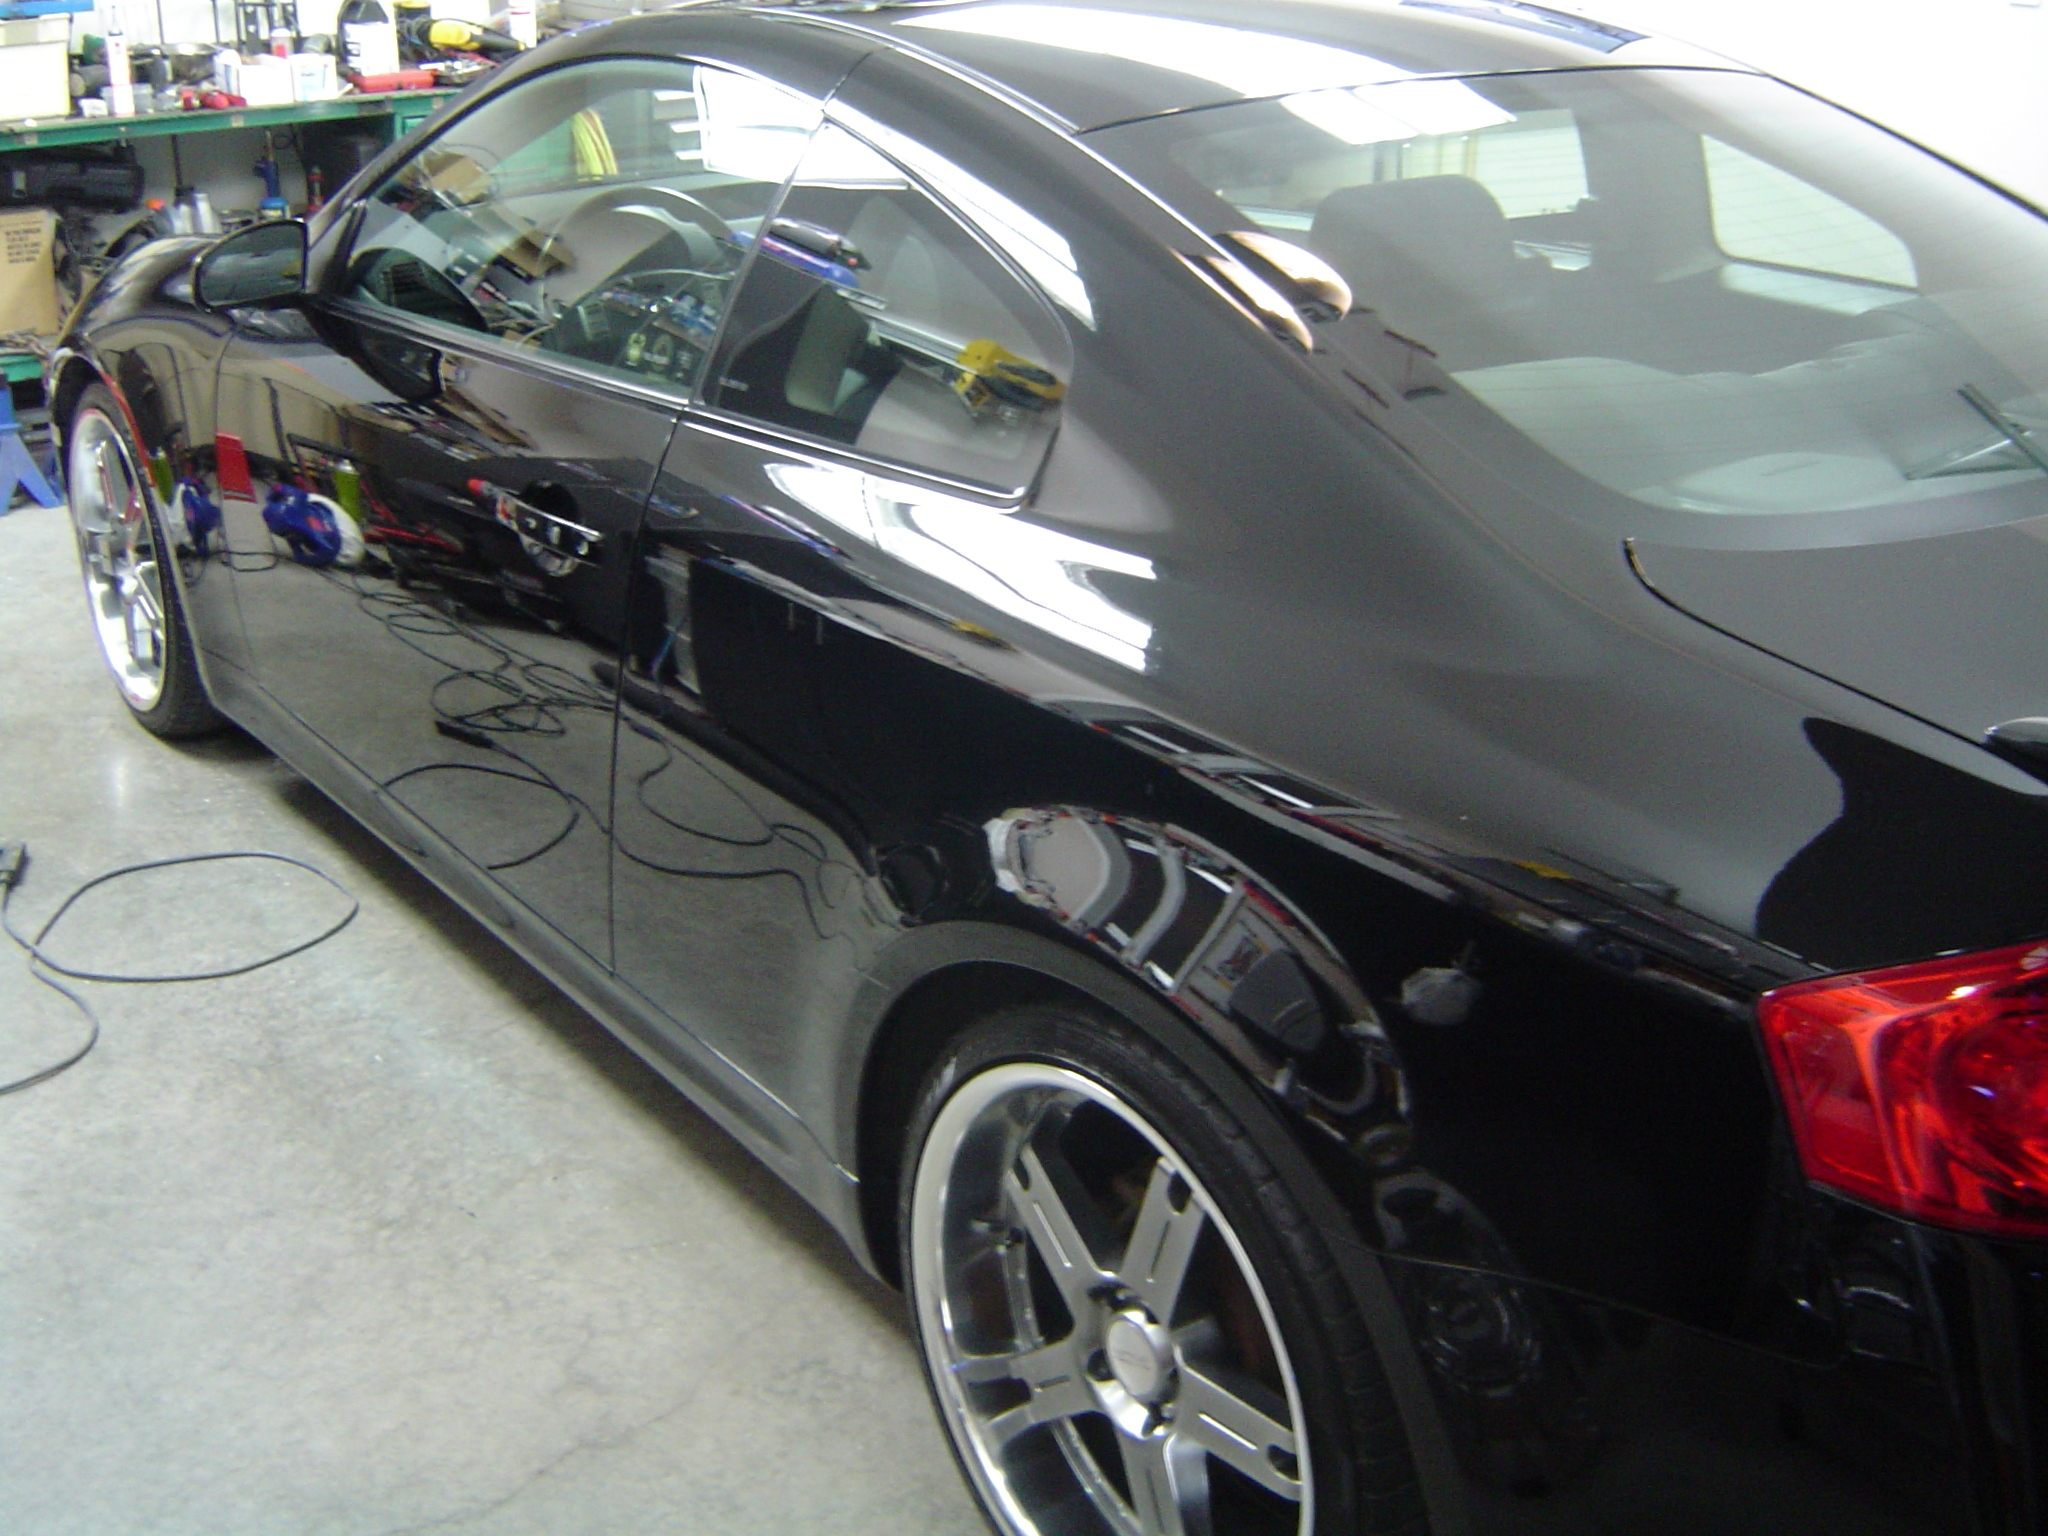 p4ck m4n 39 s 2006 infiniti g g35 coupe 2d in montreal qc. Black Bedroom Furniture Sets. Home Design Ideas